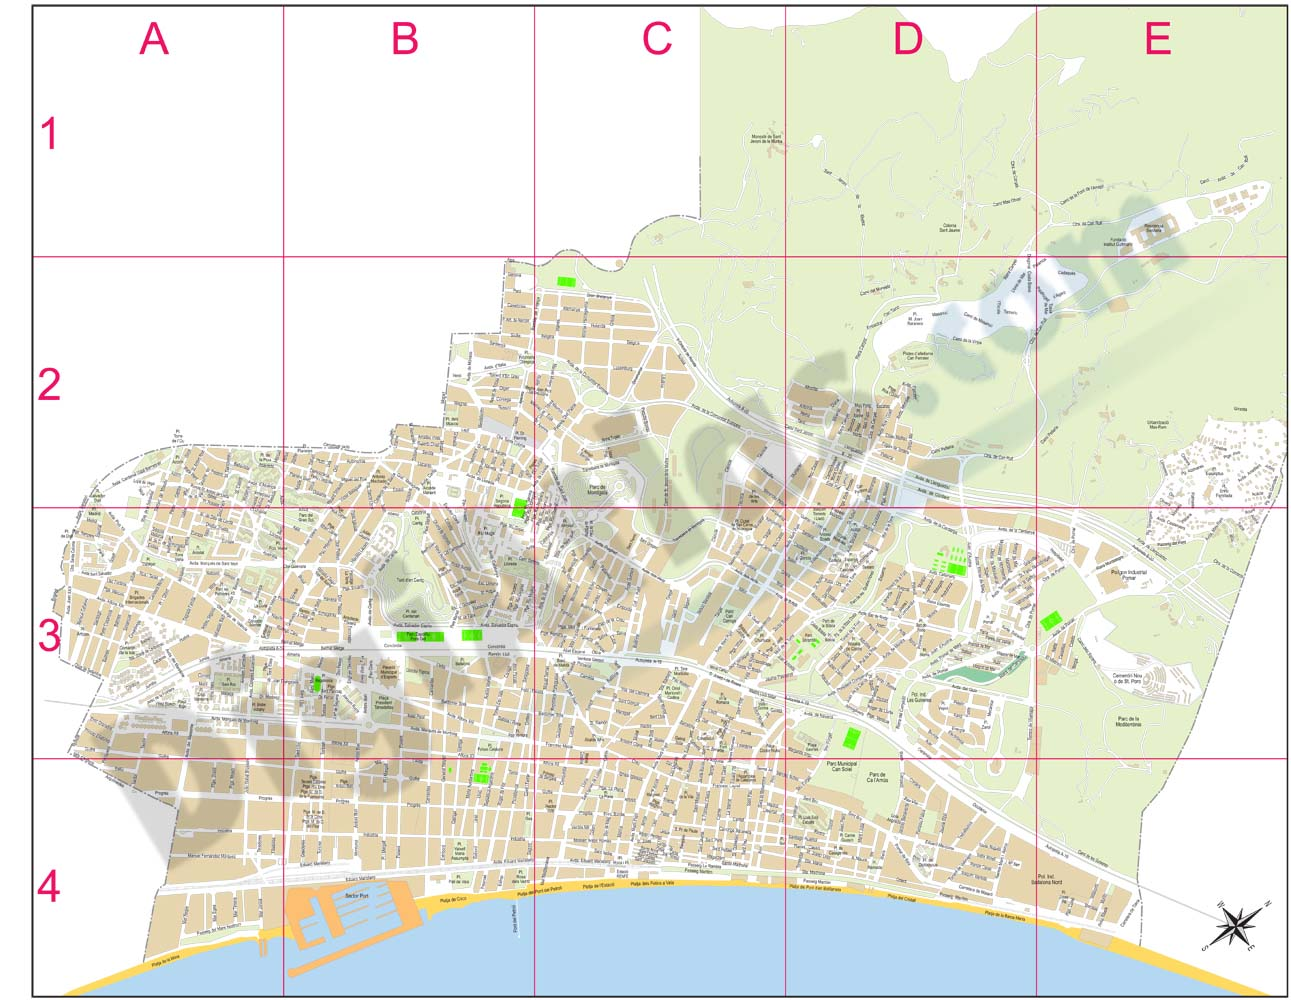 Barcelona In Spain Map.Badalona Barcelona Spain City Map